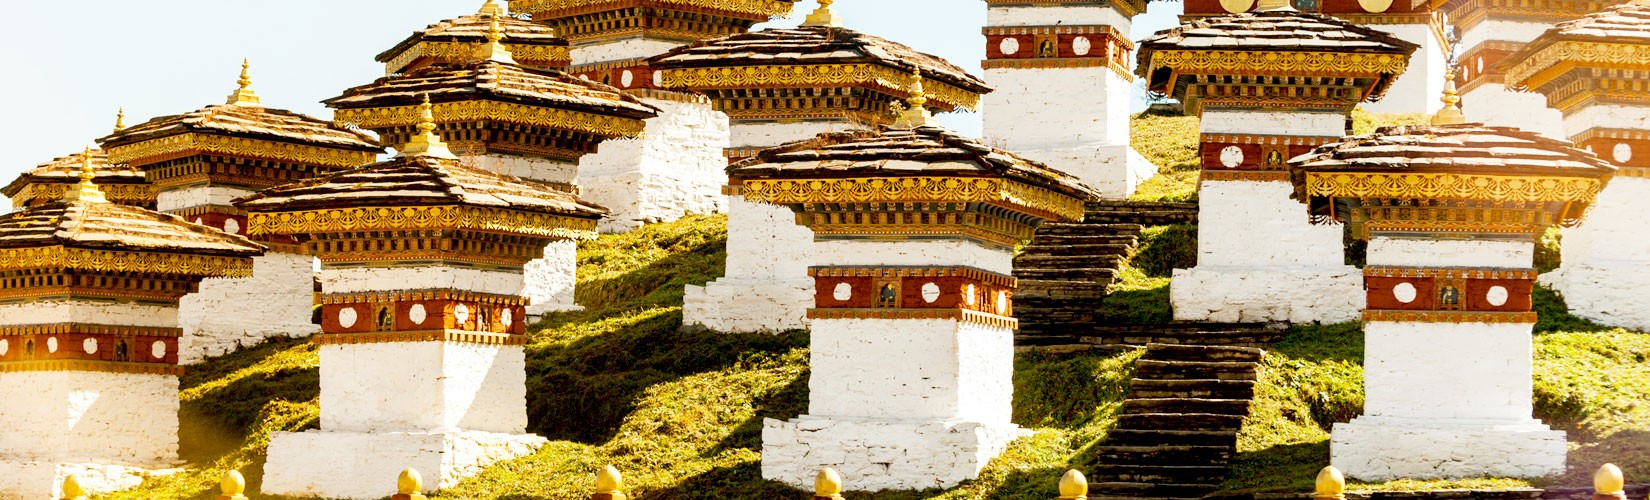 5 Night 6 day Best of Bhutan tour, Tour in Bhutan, The tour leads you to Paro and Thimpu, capital city of Bhutan. Visiting Thimpu Valley has its own uniqueness blend with culture and natural beauty. The Himalayan flight to Paro and visit to Taktsang Monas